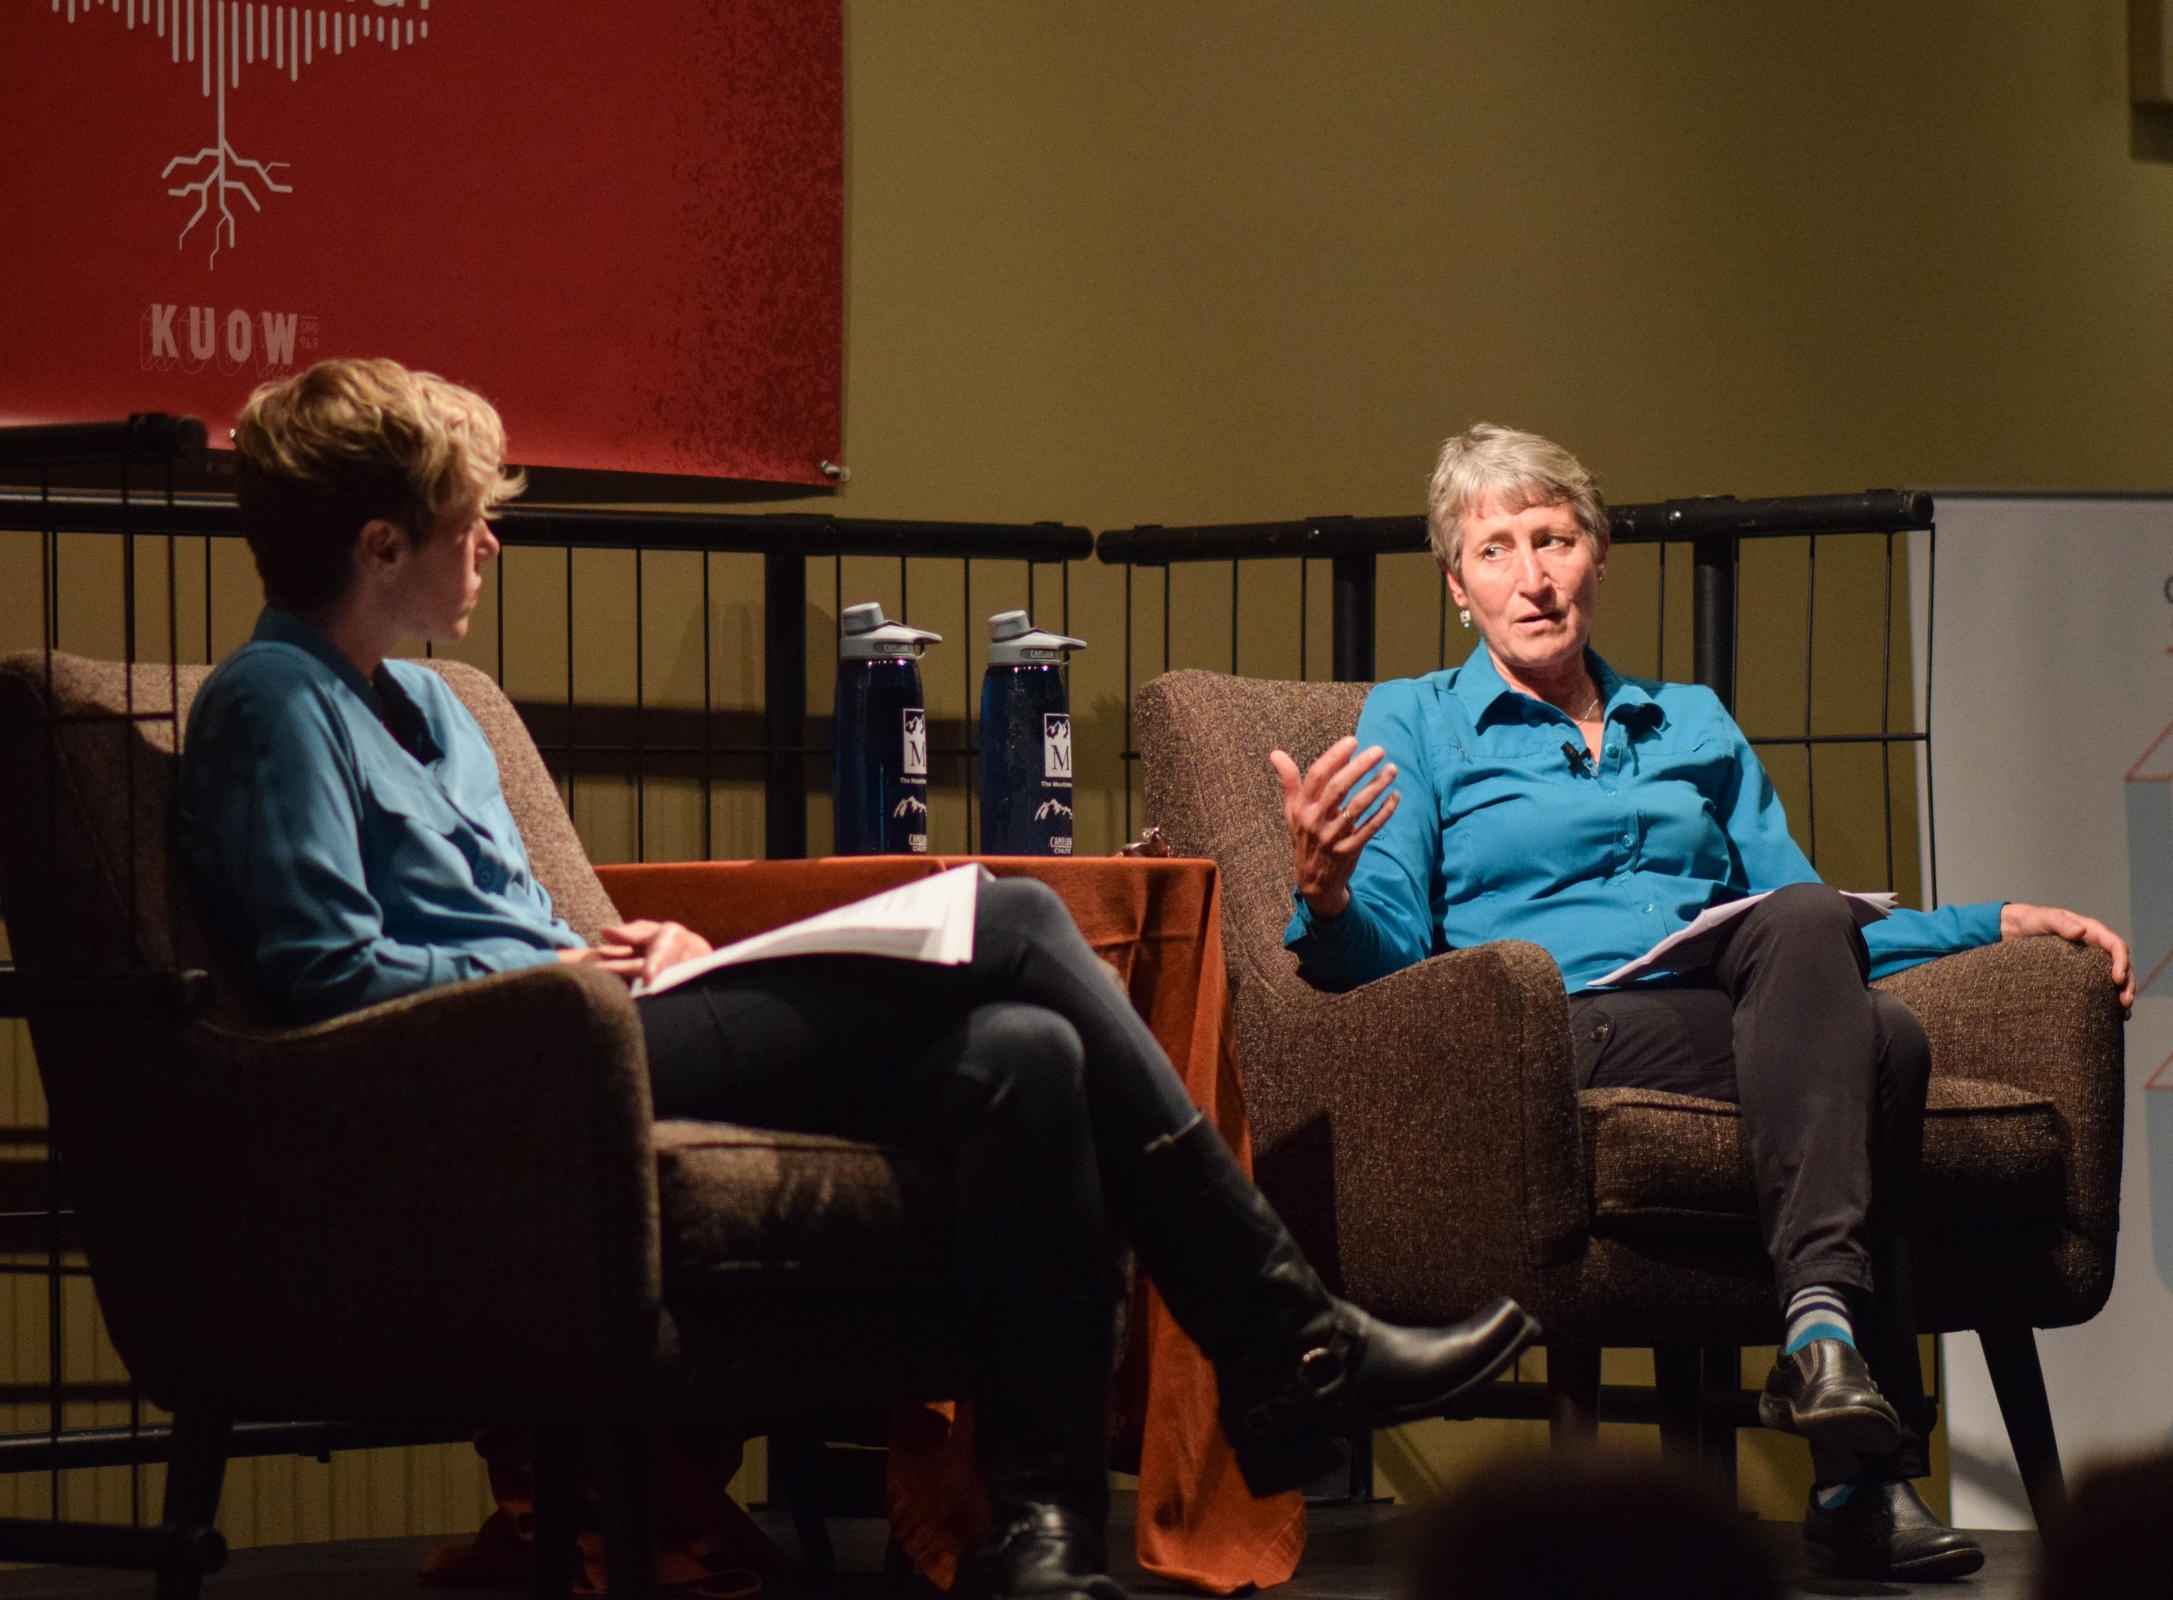 Interviewing Sally Jewell, former Interior Secretary under President Obama, before a live audience.